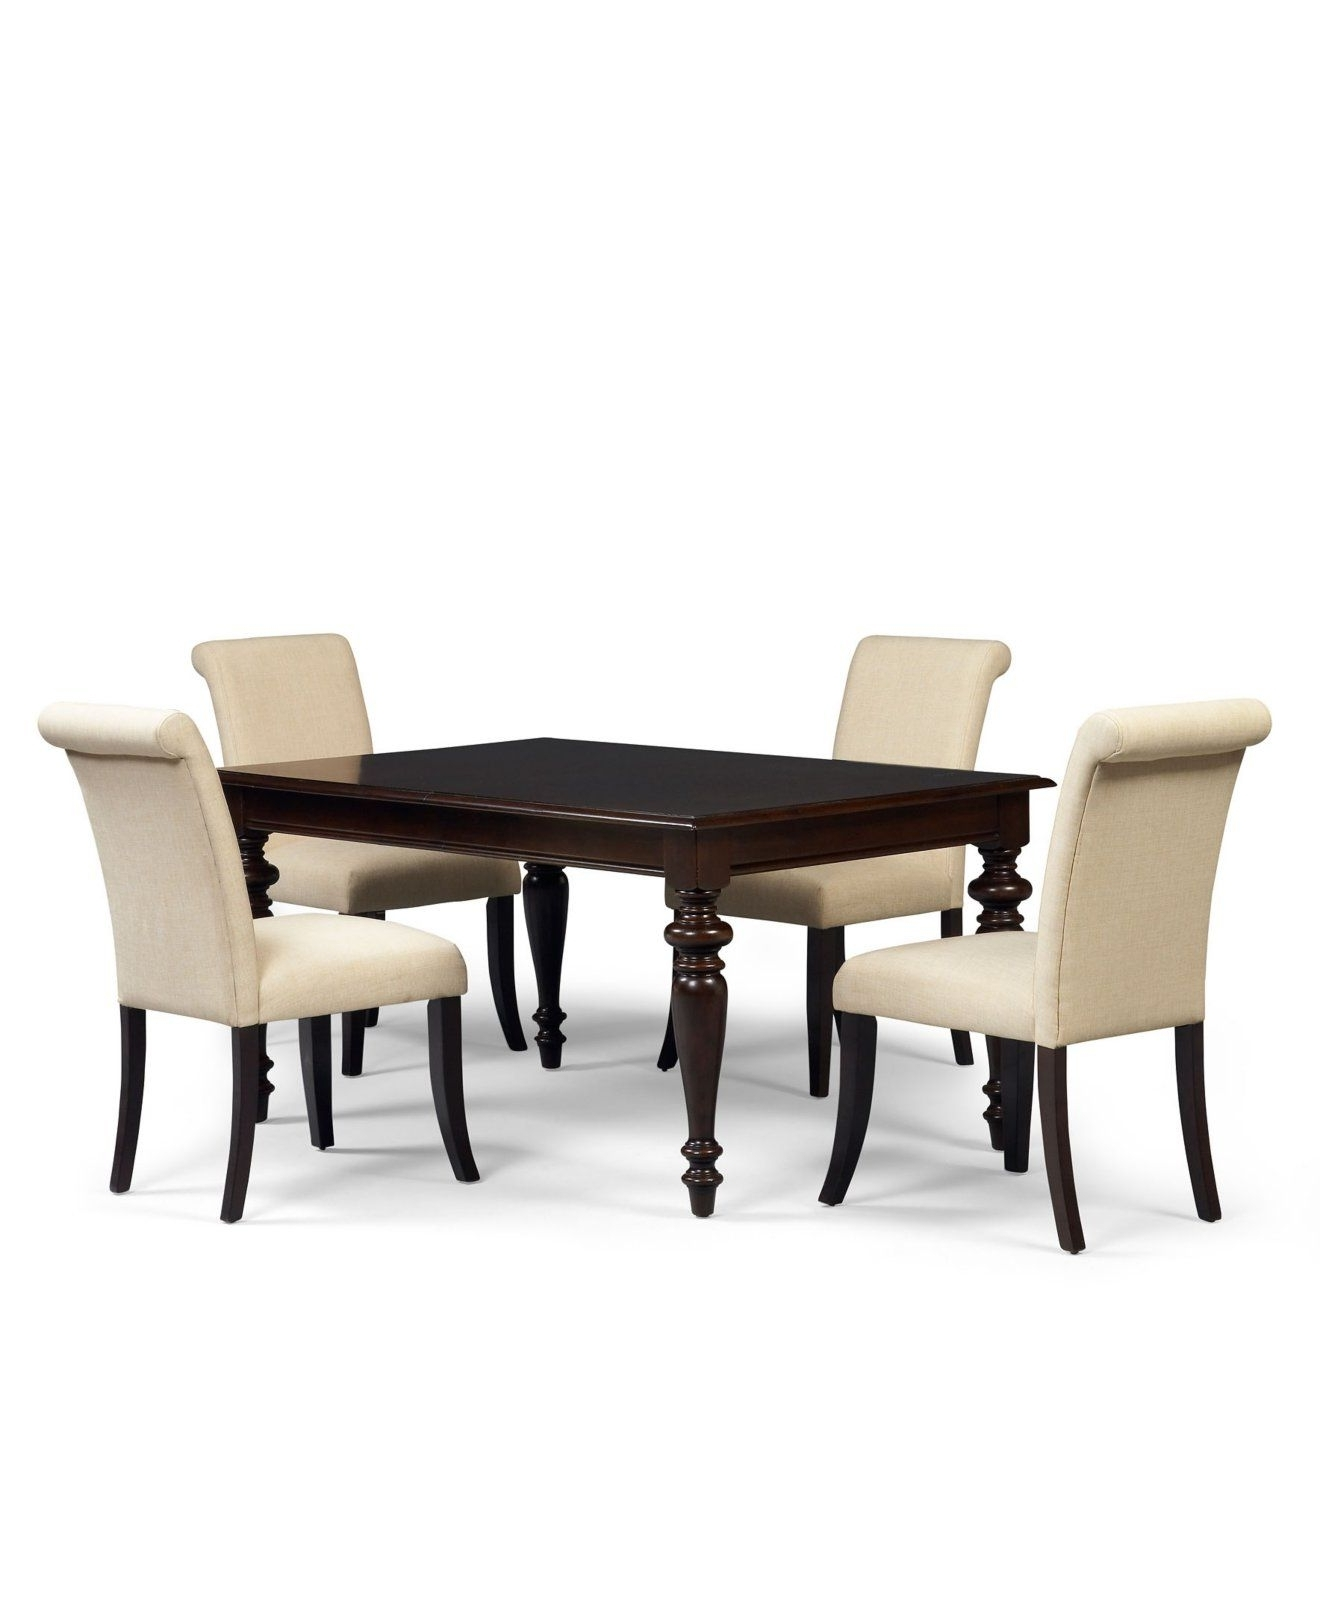 Bradford 7 Piece Dining Sets With Bardstown Side Chairs Intended For Most Up To Date Results For Bradford 7 Piece Dining Room Furniture Set With (View 8 of 25)